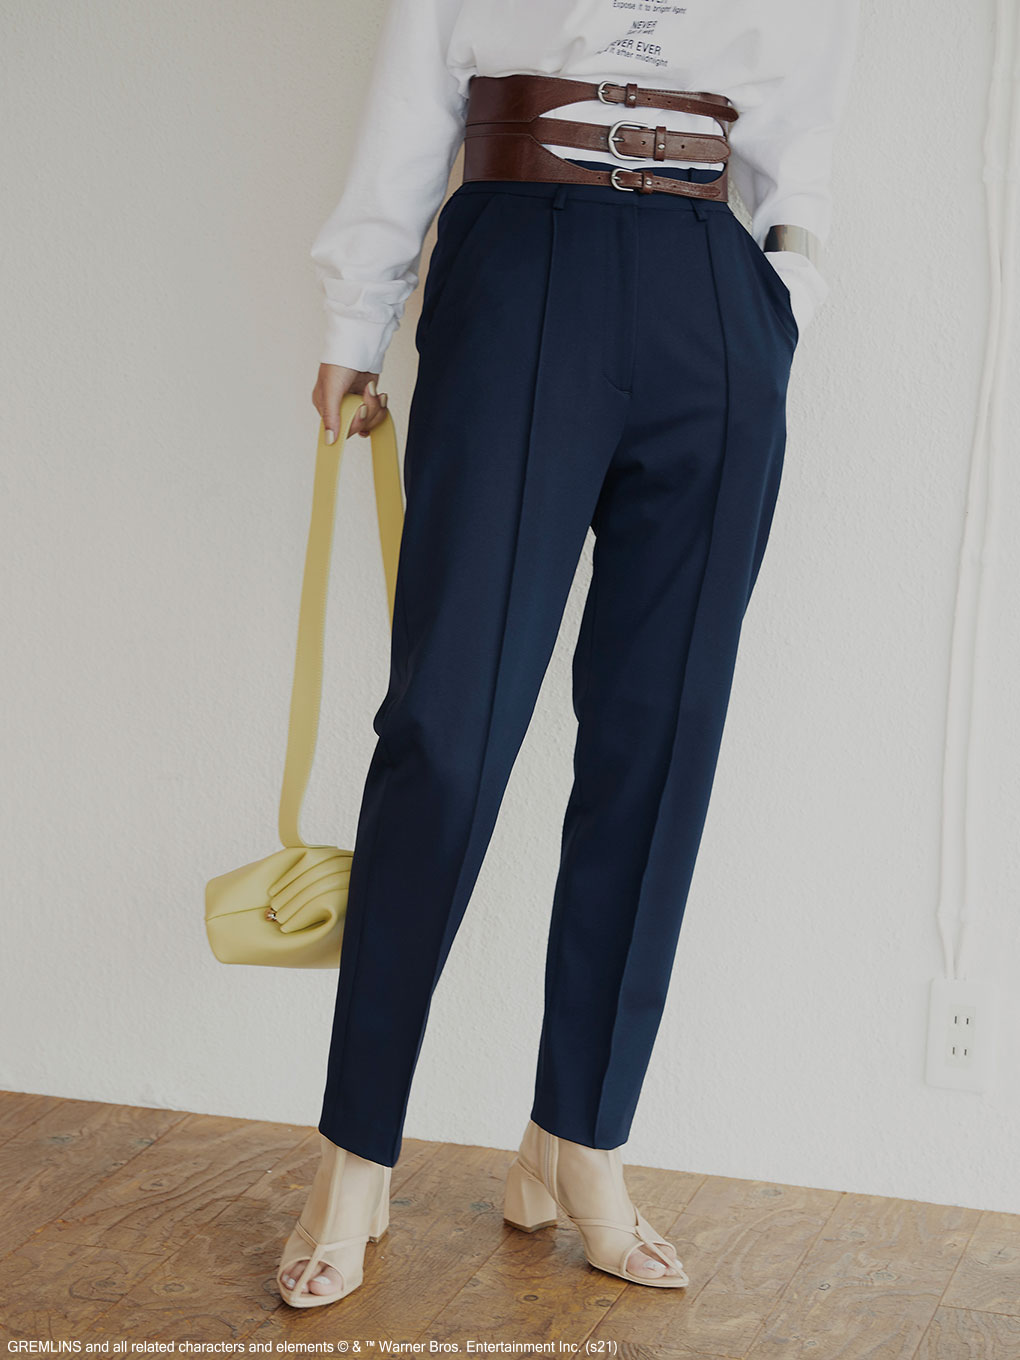 MANNISH TAPERED PANTS